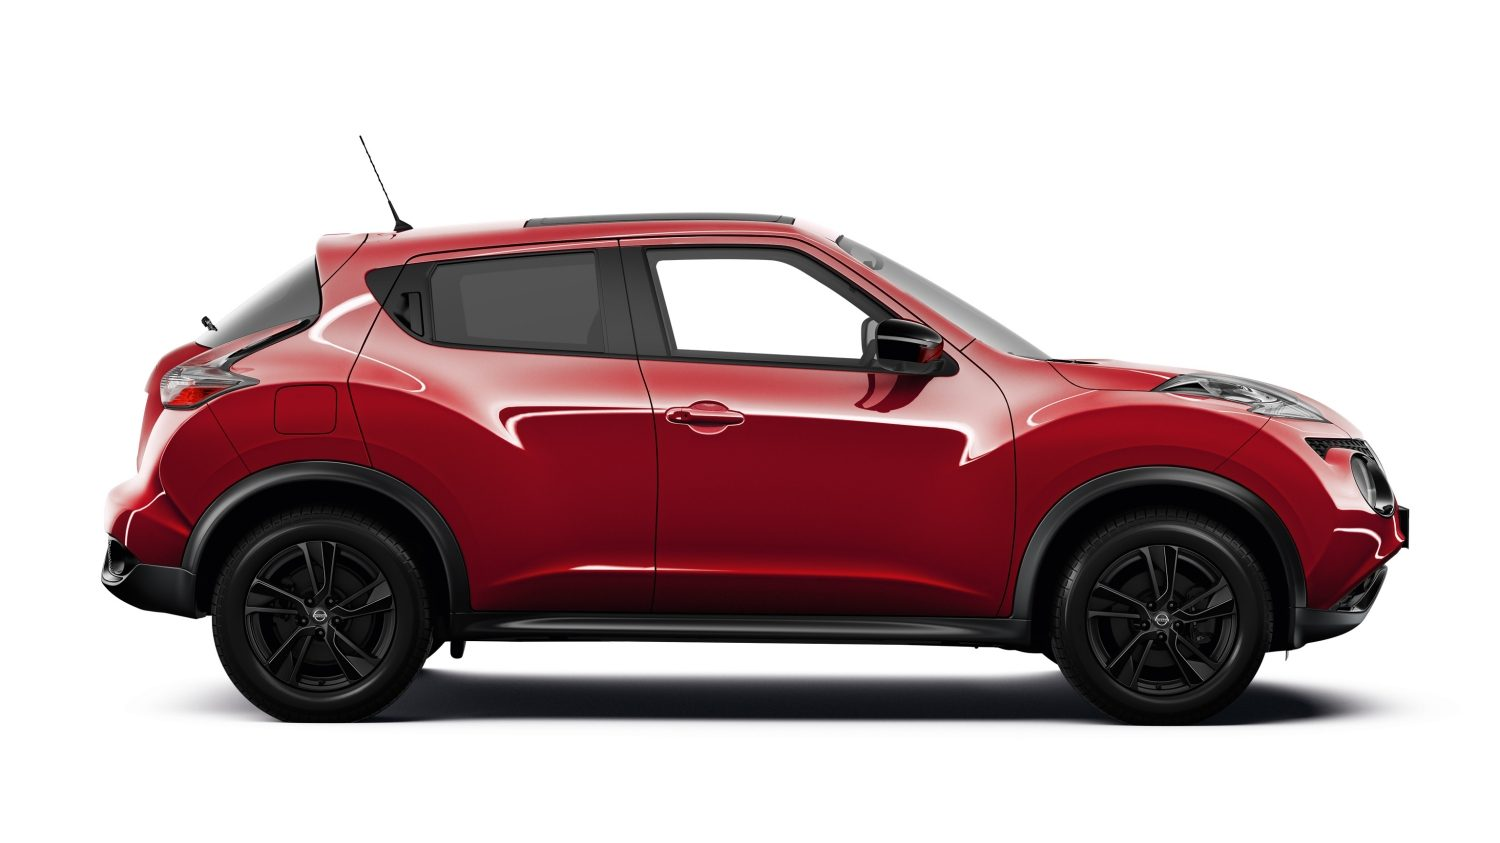 Nissan Juke - Exterior design - Profile view